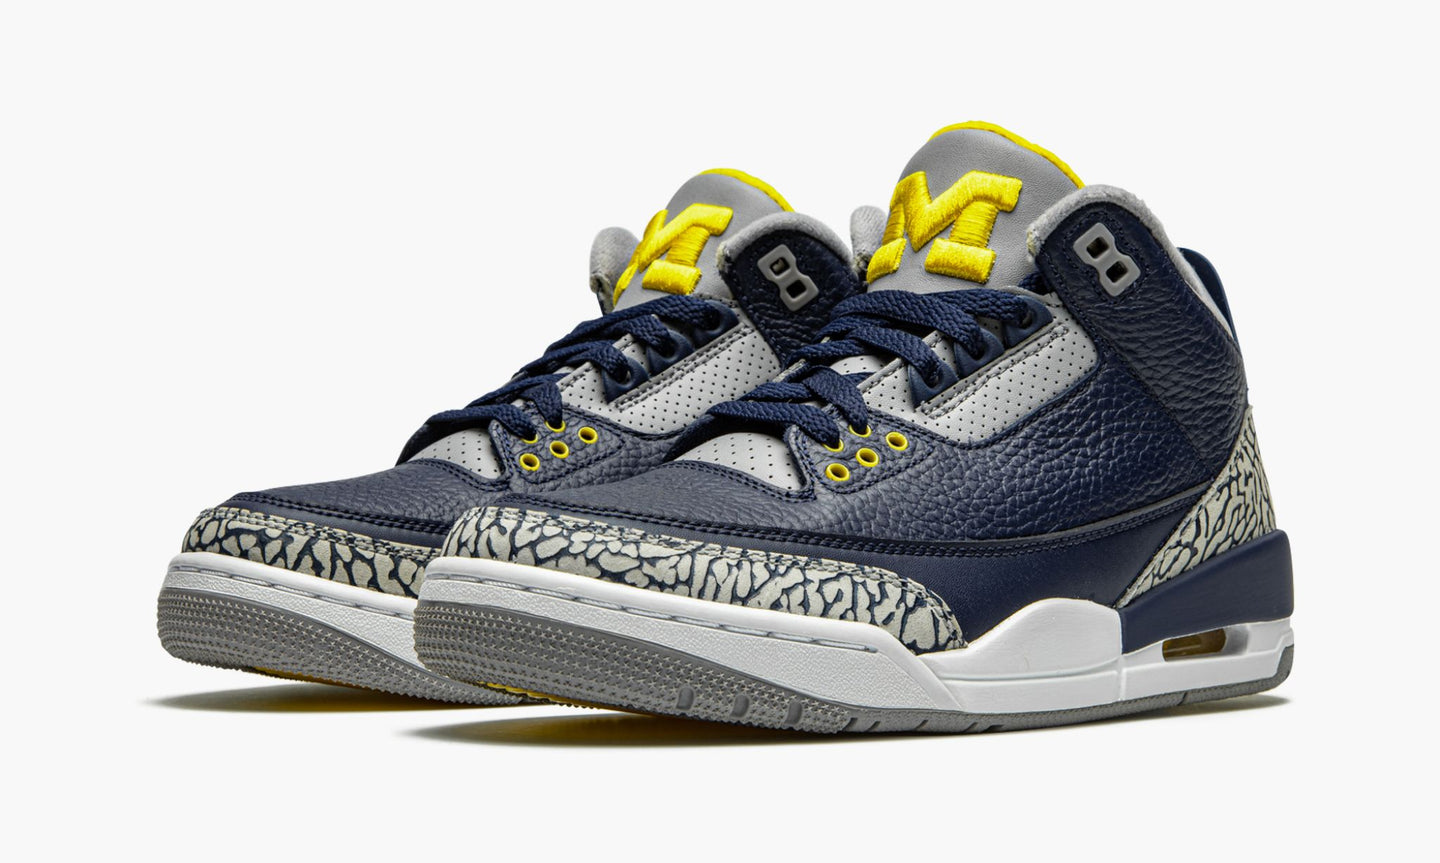 Air Jordan 3 Retro 'Michigan'